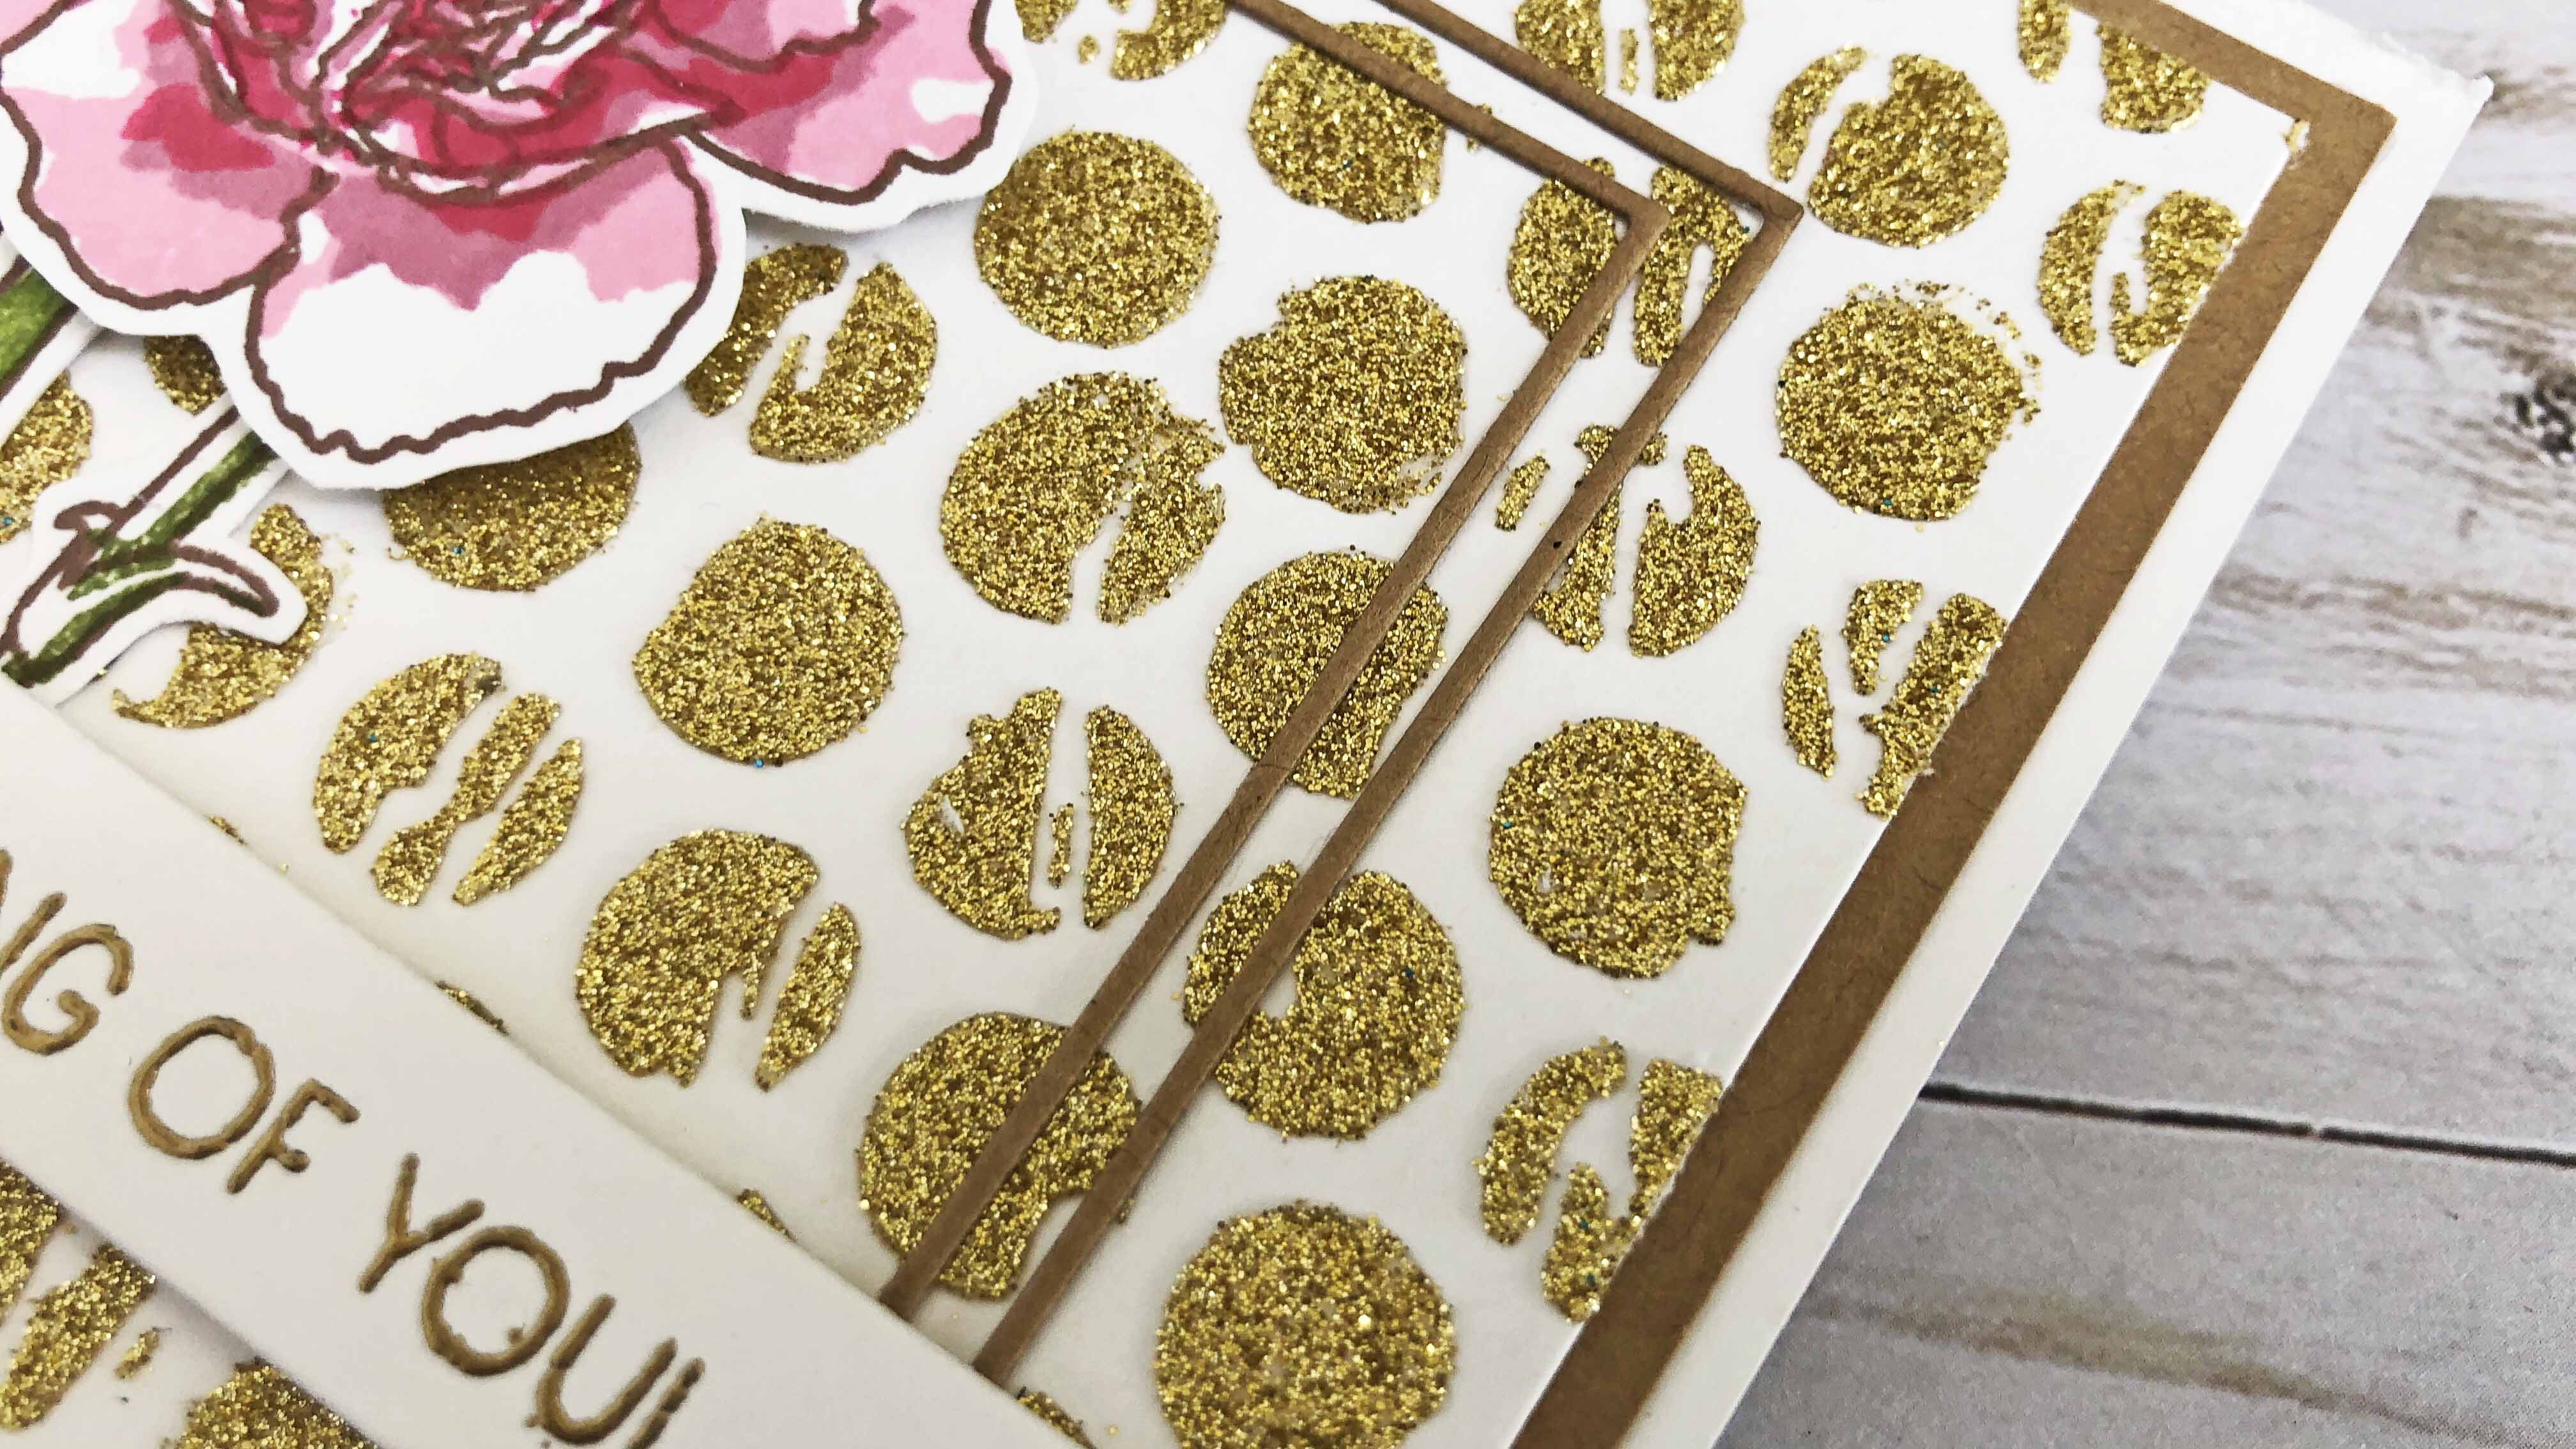 Close Up - Hot Foil Gel with Heidi Swapp Glitter Sheets in Gold.